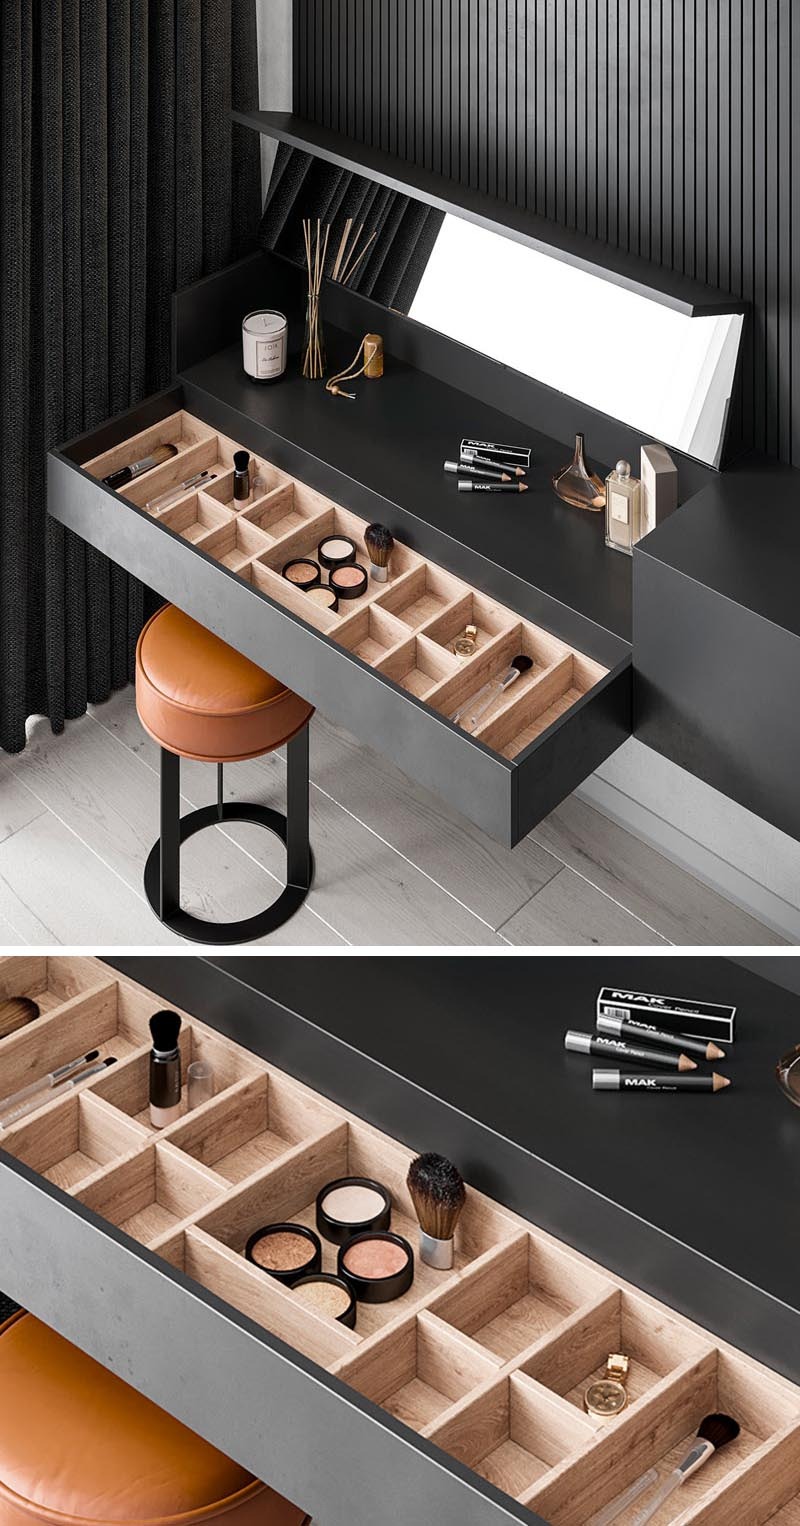 The Interior Workshop by Iryna Lysiuk has designed a master bedroom that features a minimalist black floating sideboard with a hidden make-up vanity. #HiddenMakeupVanity #MakeupVanity #BedroomDesign #FurnitureDesign